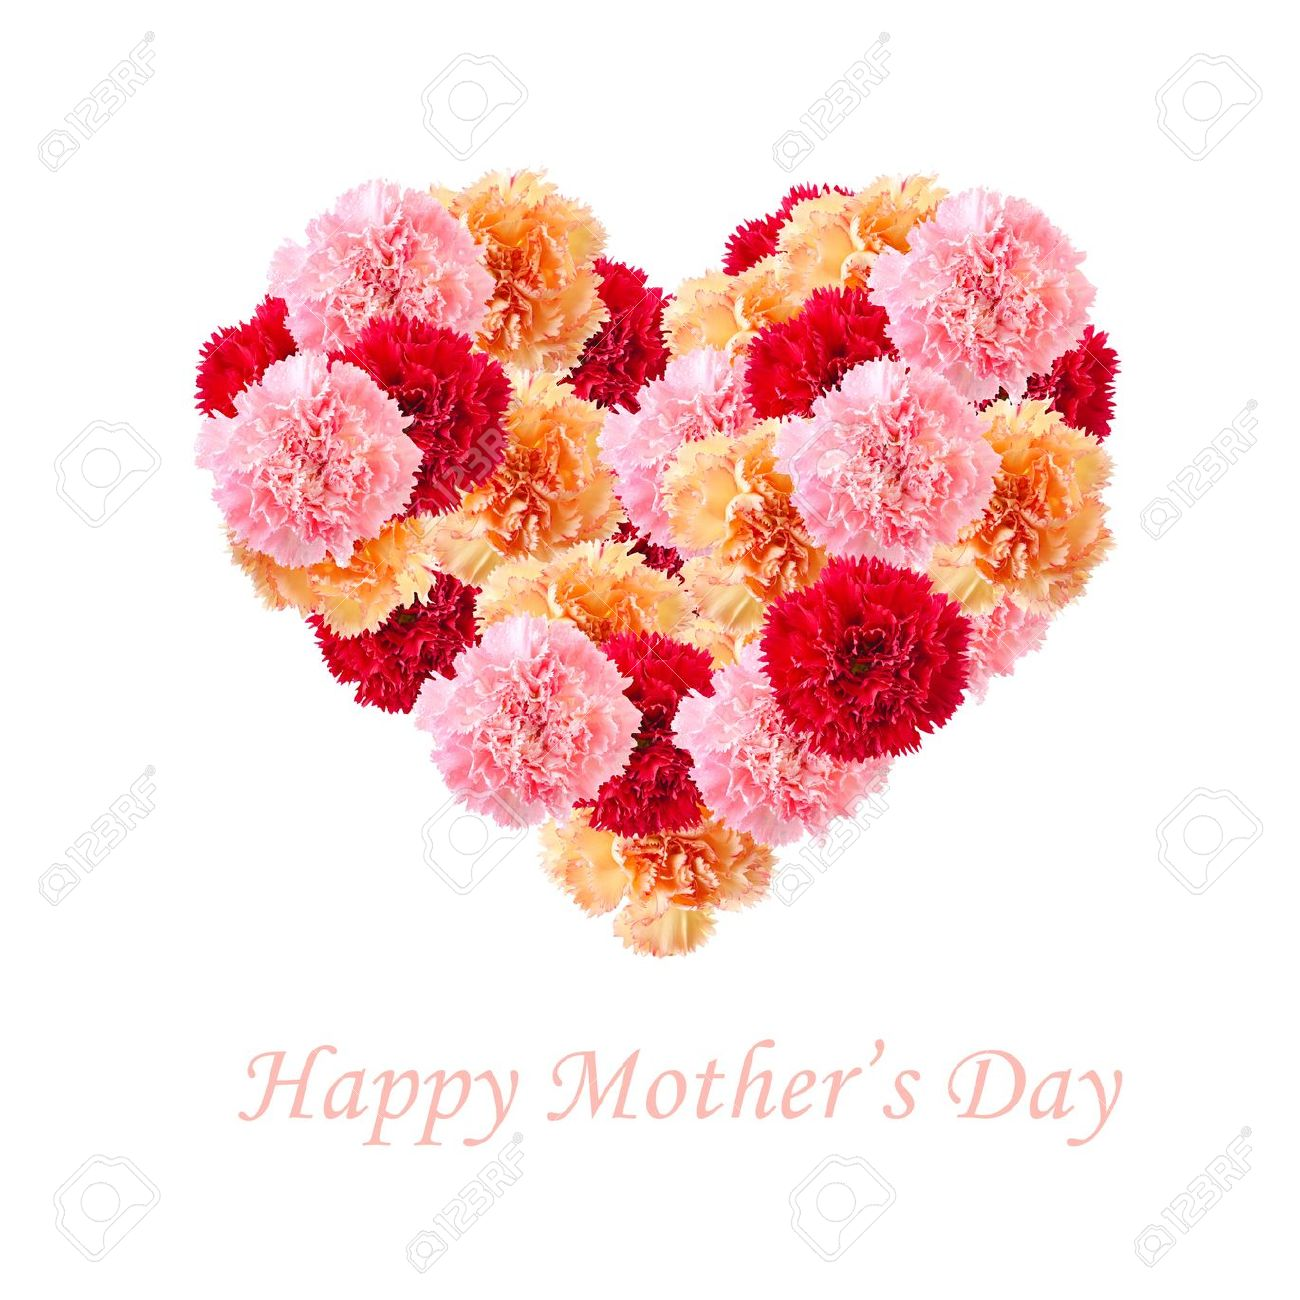 f4ece0ba2e83 Bouquet of colorful assorted carnation flowers In Love Shape isolated on  white with copy space.